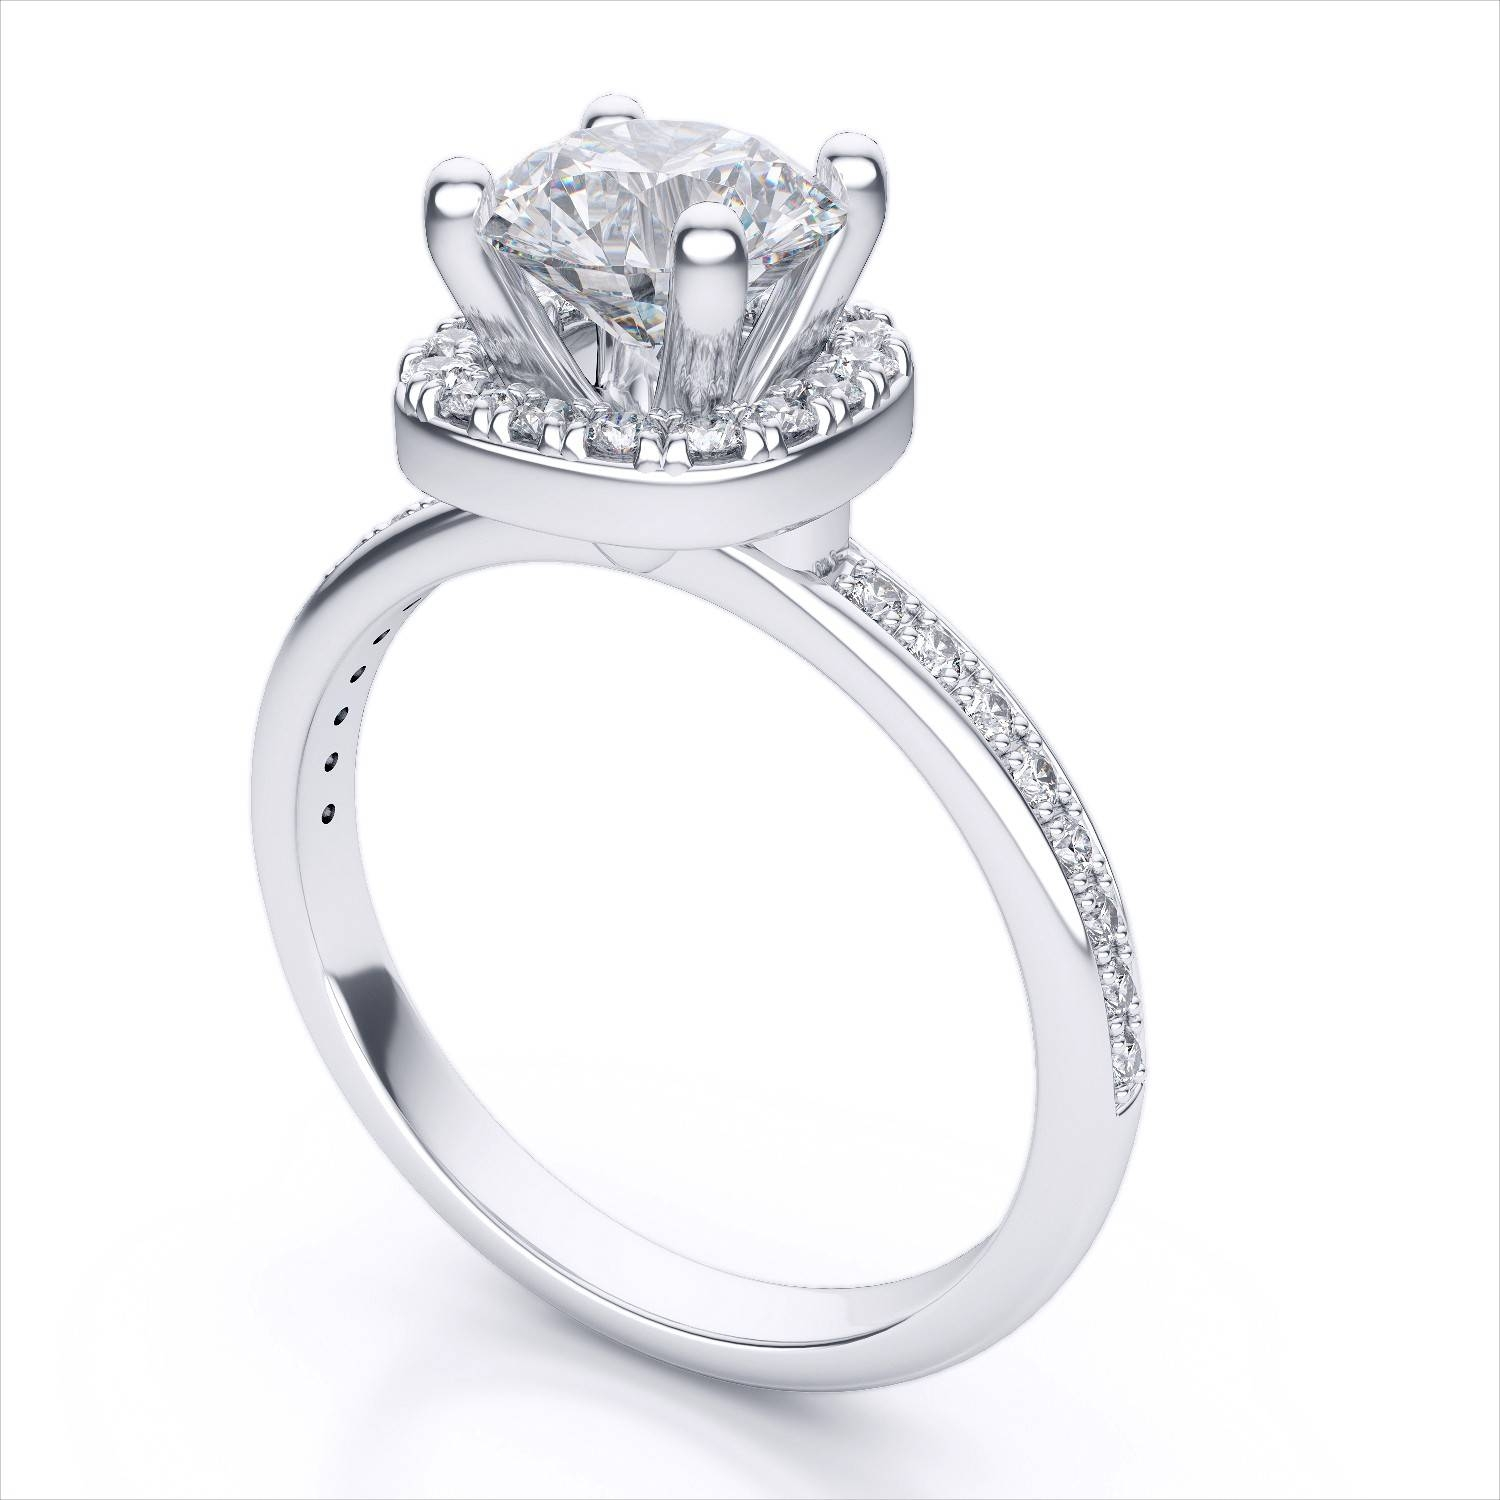 in round settings ring white engagement setting gold profile solitaire jewellery low diamond trellis